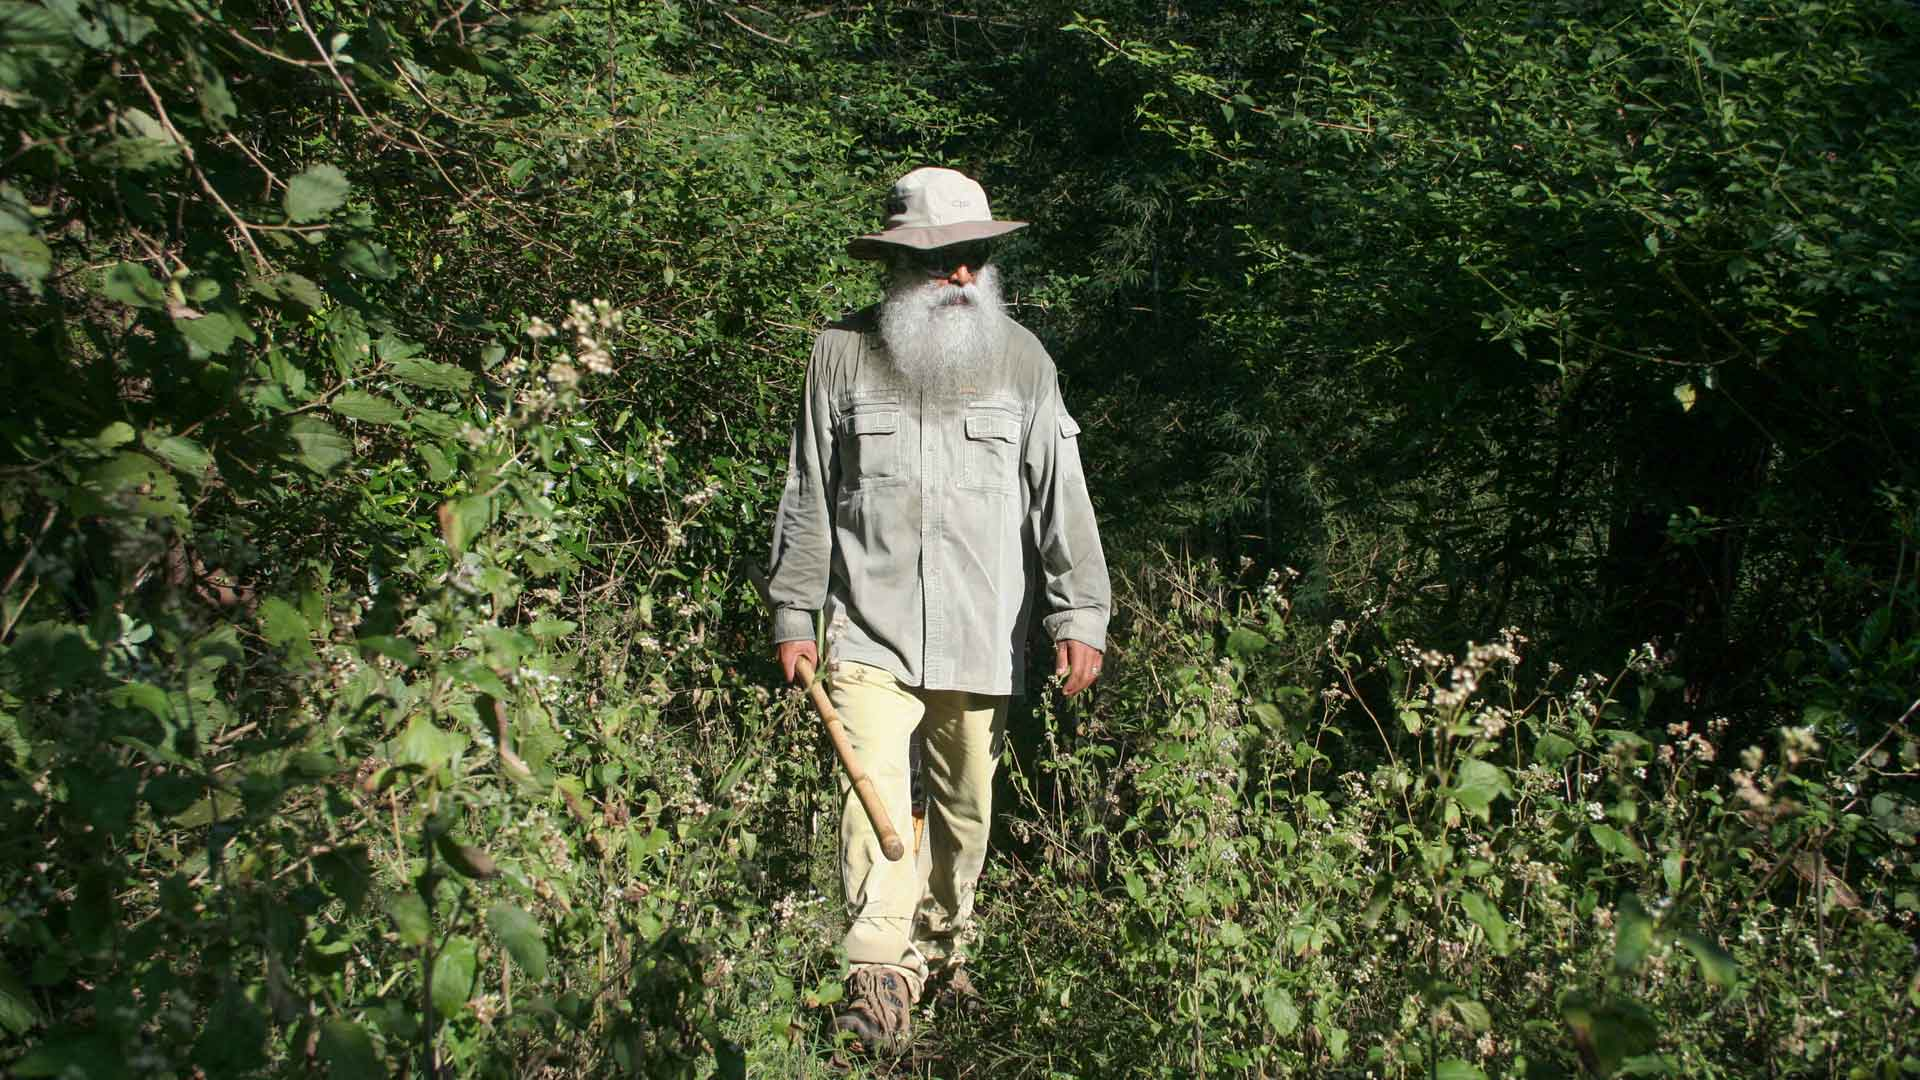 23 Days in the Jungle: When Sadhguru Trekked From Nagarhole